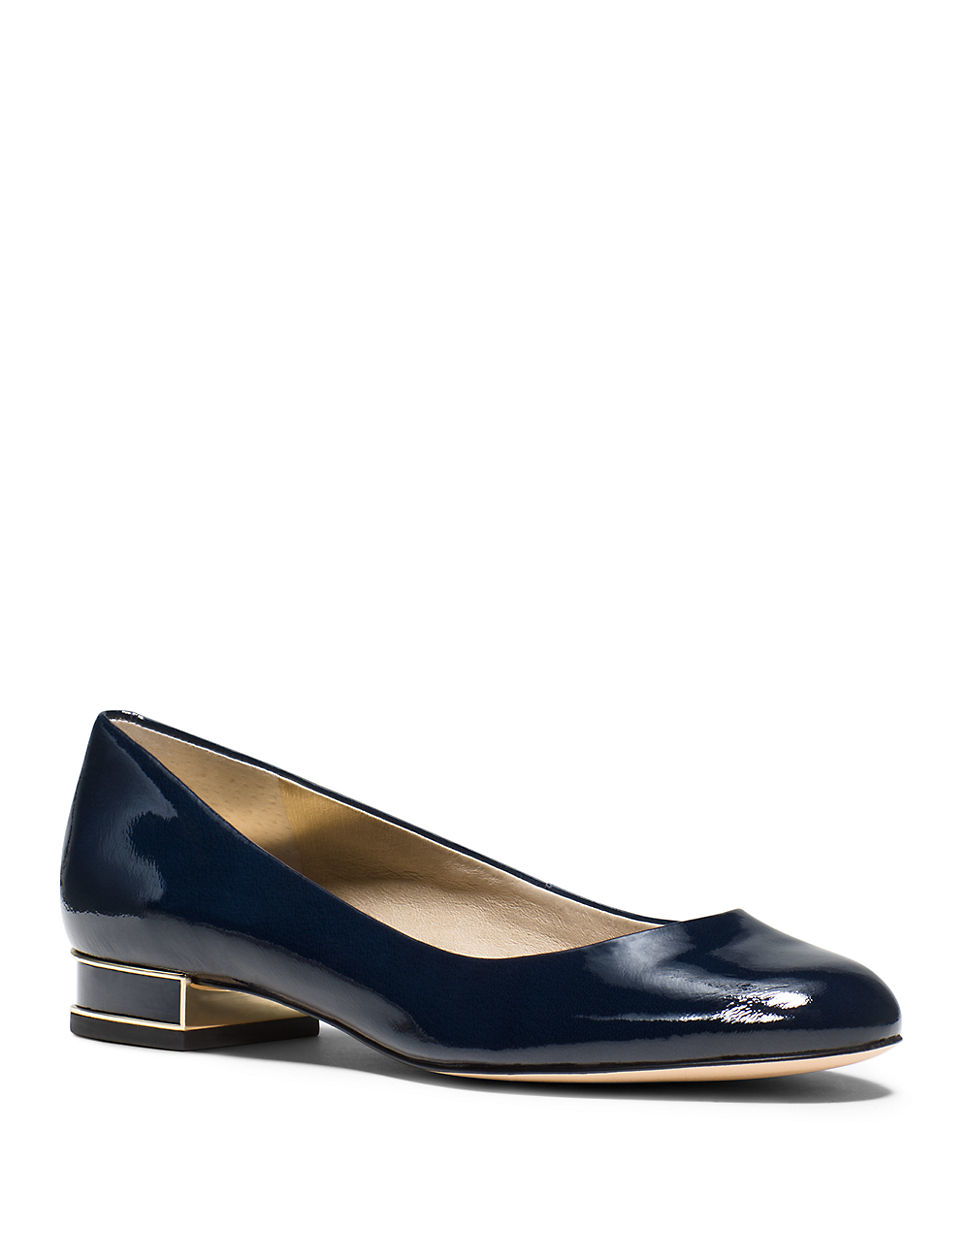 michael michael kors patent leather dress shoes in